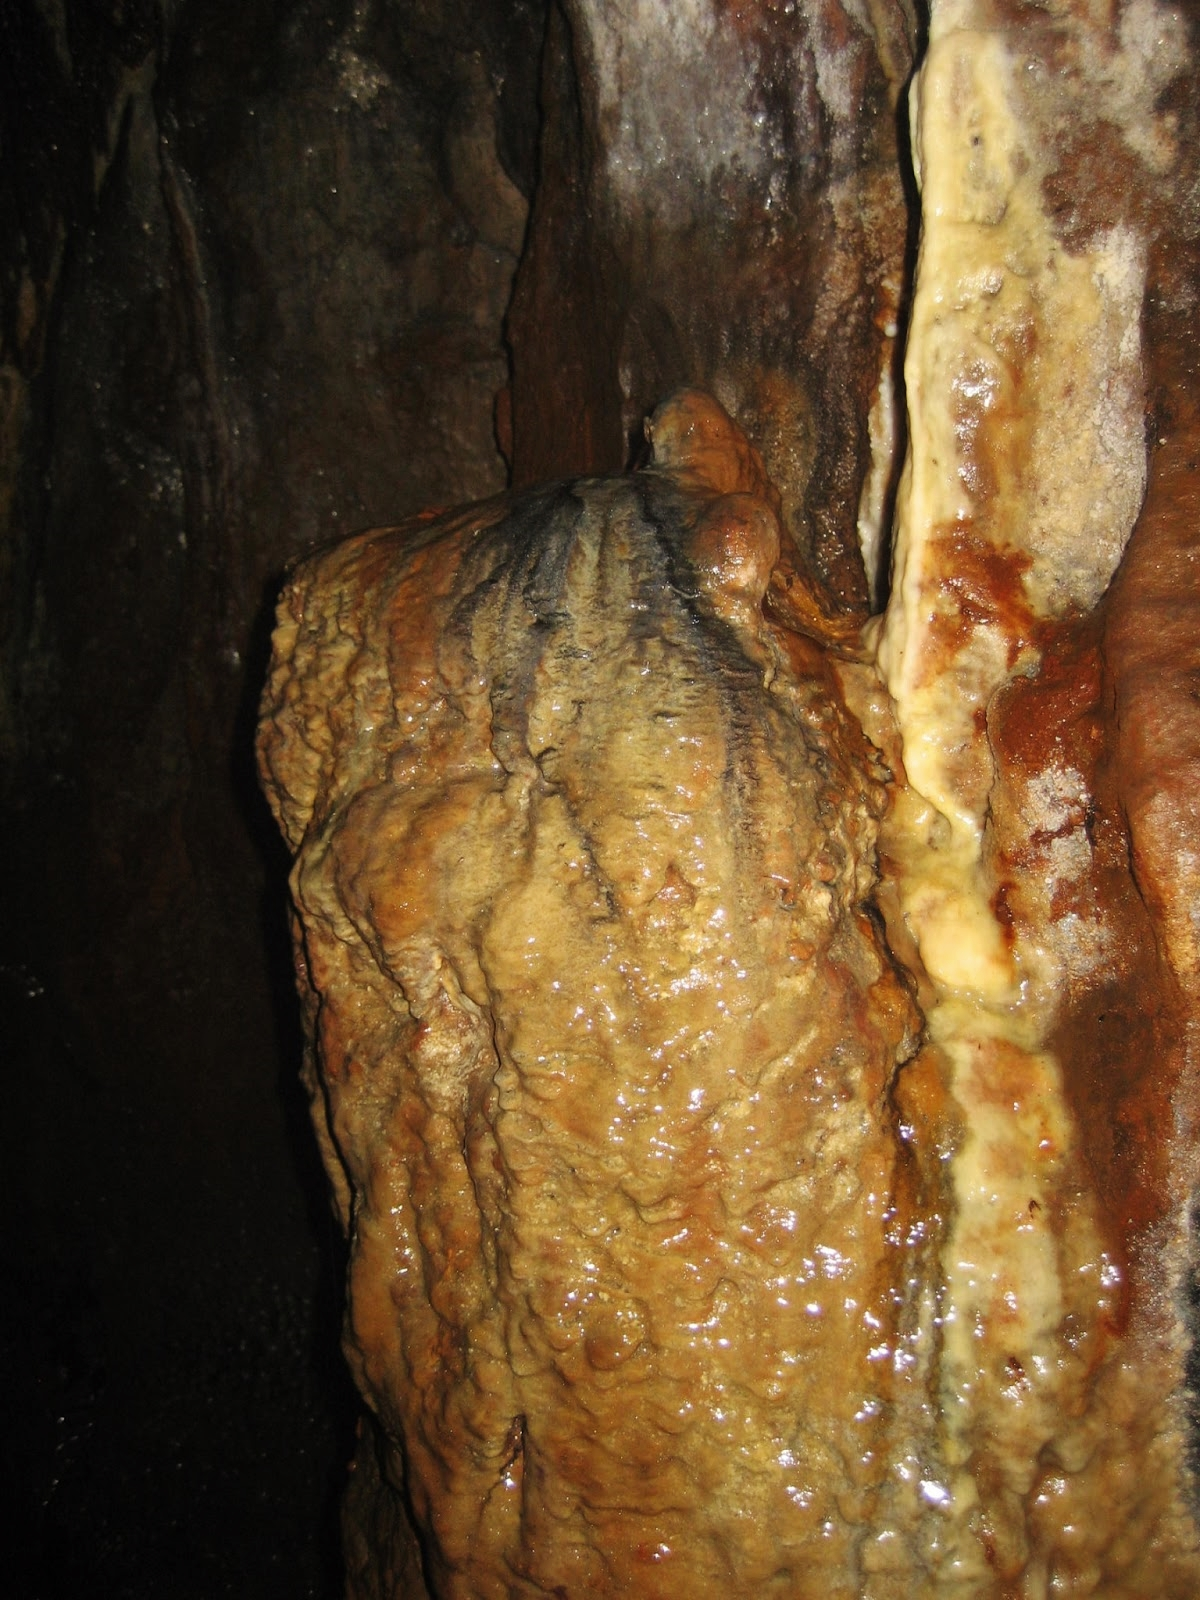 Katnot Cave has a wealth of flowstone formations – including the Katnot squirrel. Stephen Oldfield